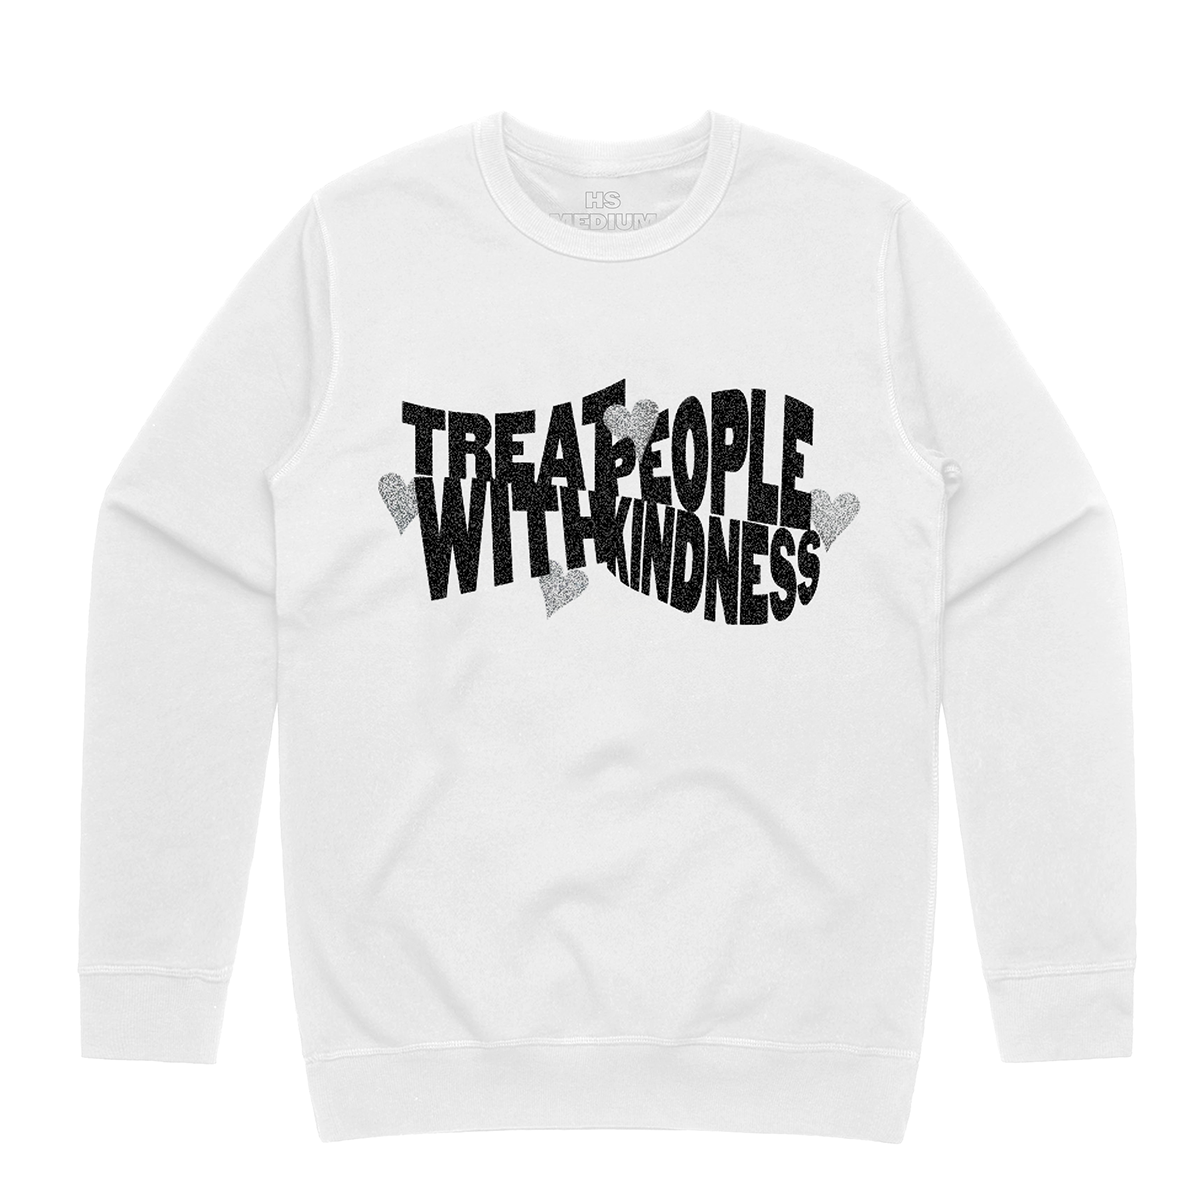 Treat People With Kindness Glitter Crewneck Sweatshirt